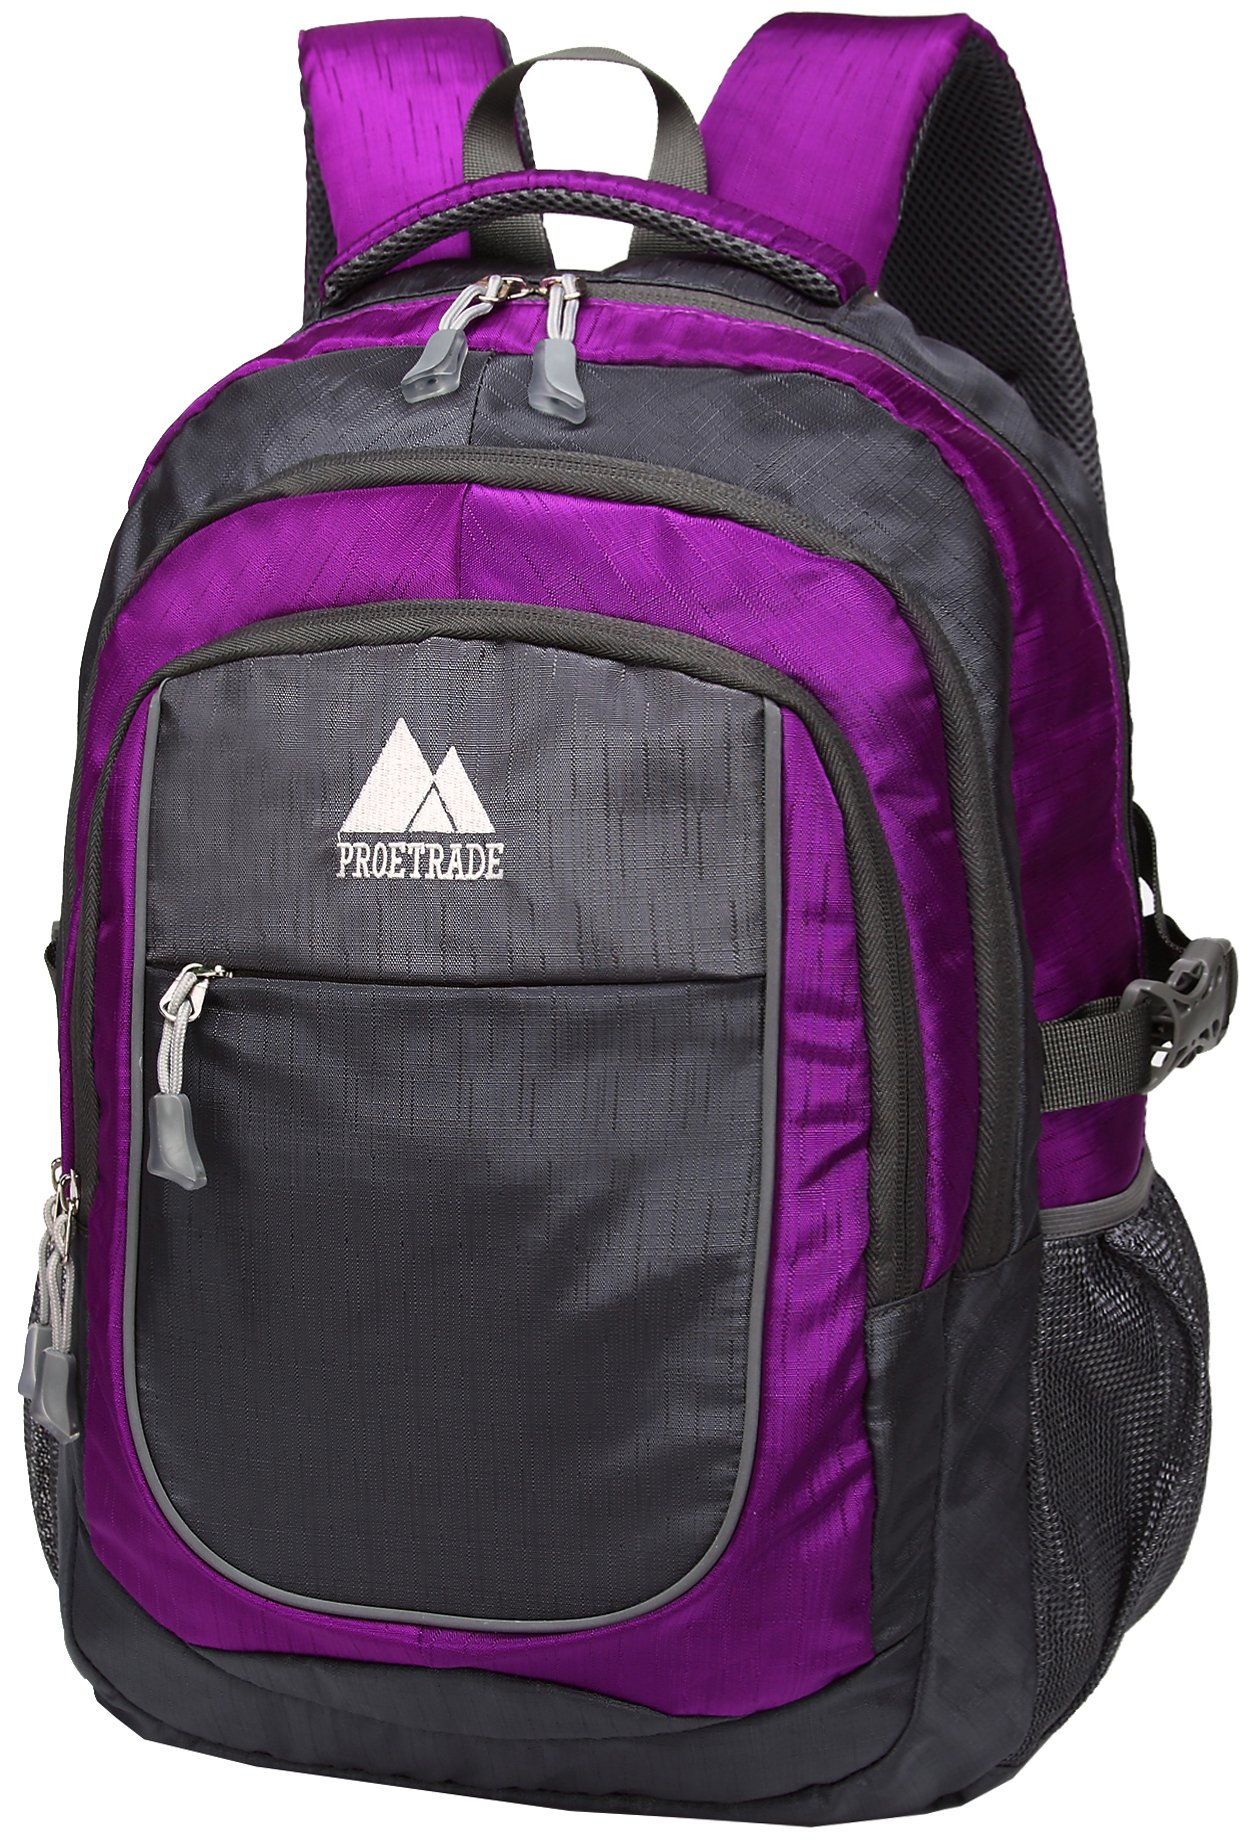 School Backpack For College Travel Hiking Fit Laptop Up to 15.6 Inch Water Resistant (Purple)